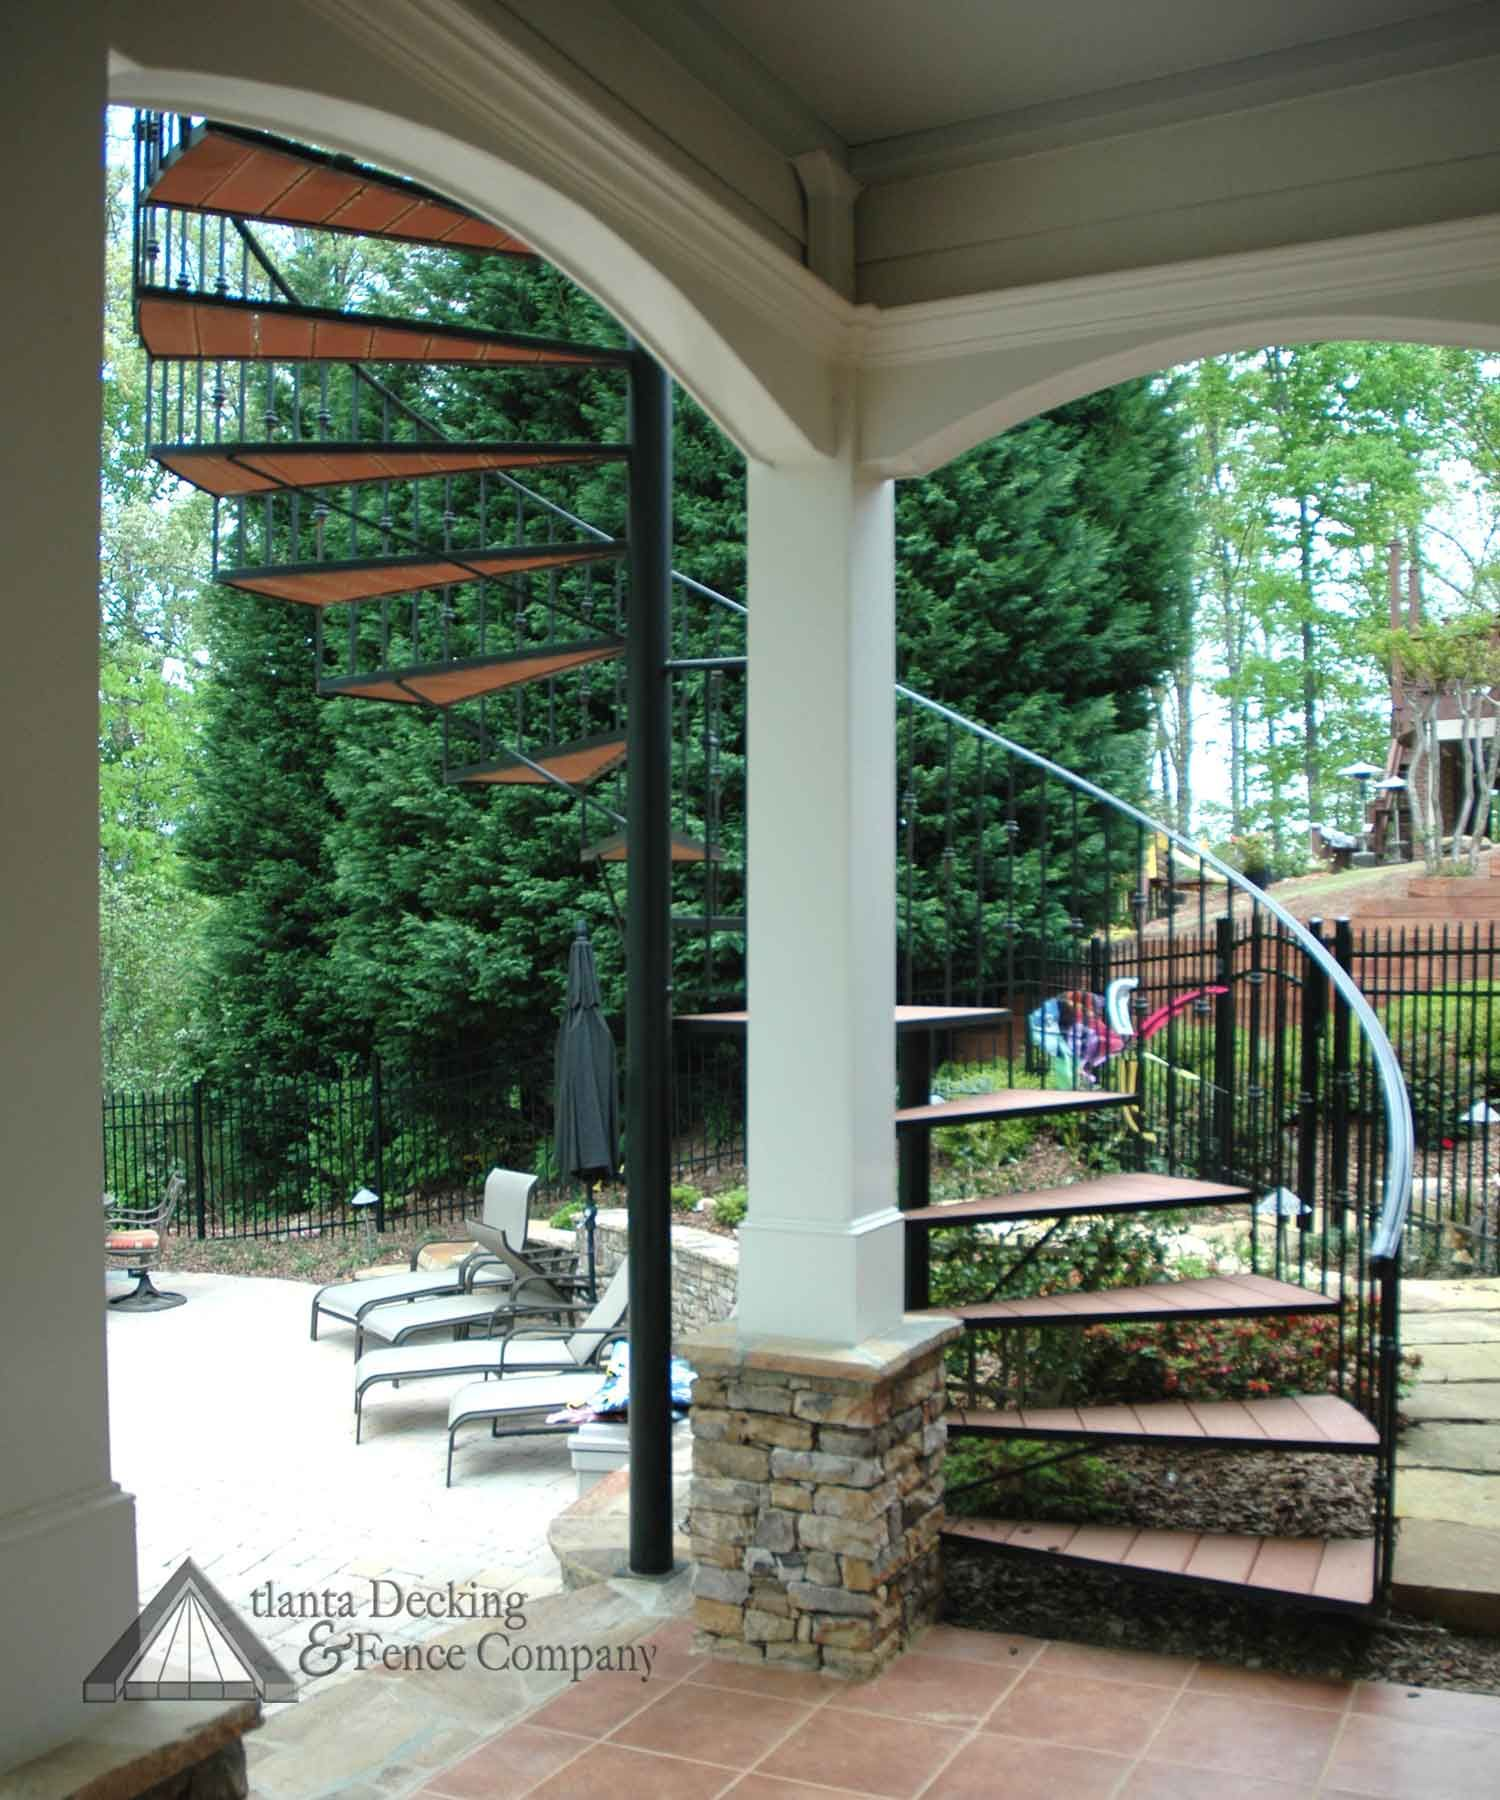 Outdoor+Spiral+Deck+Stairs | Pictures Of Under Porch View From Atlanta  Decking And Fence Company.